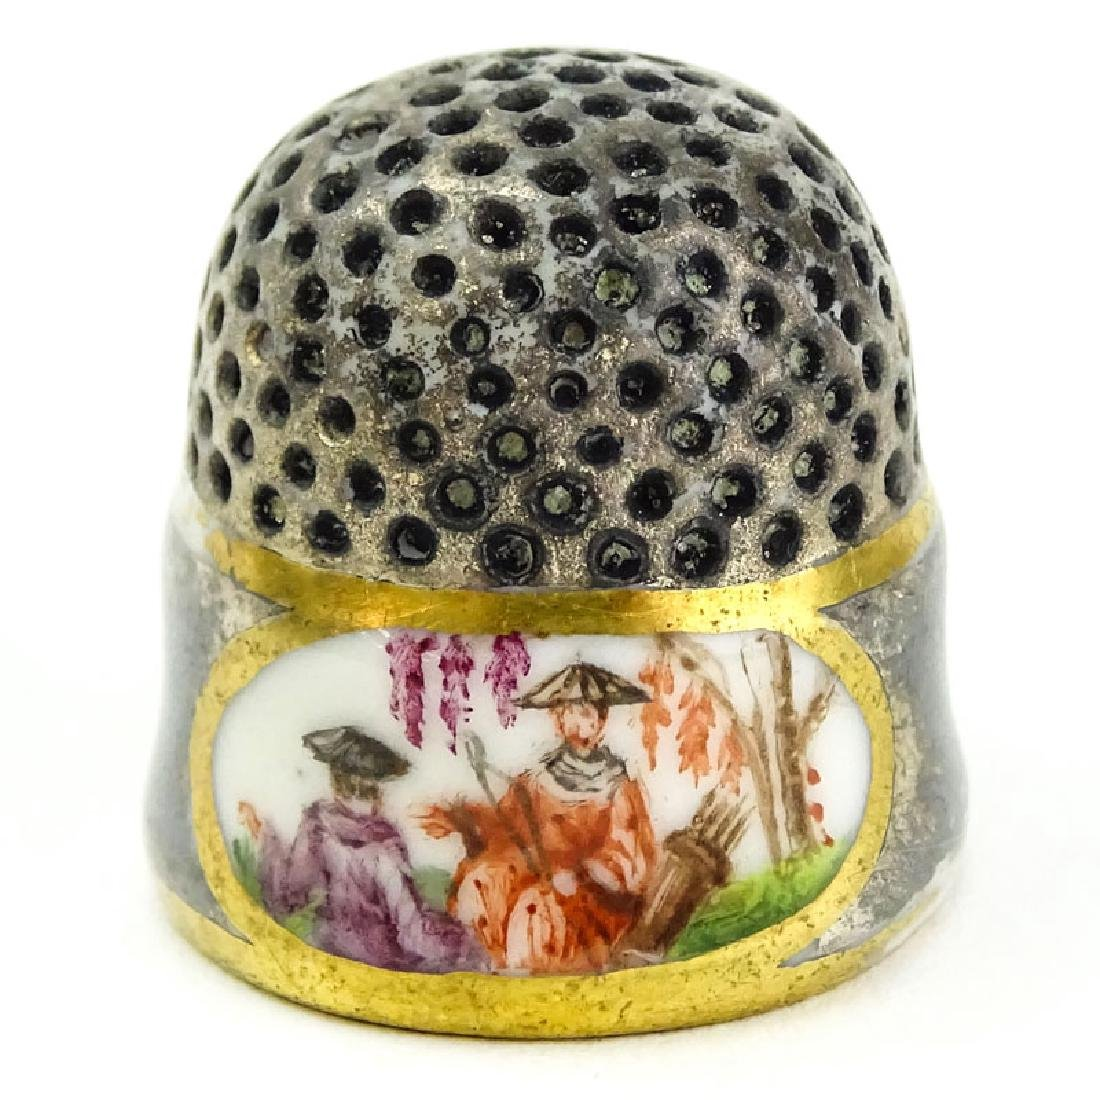 Mid 18th Century Meissen Porcelain Thimble. Gray/Pewter